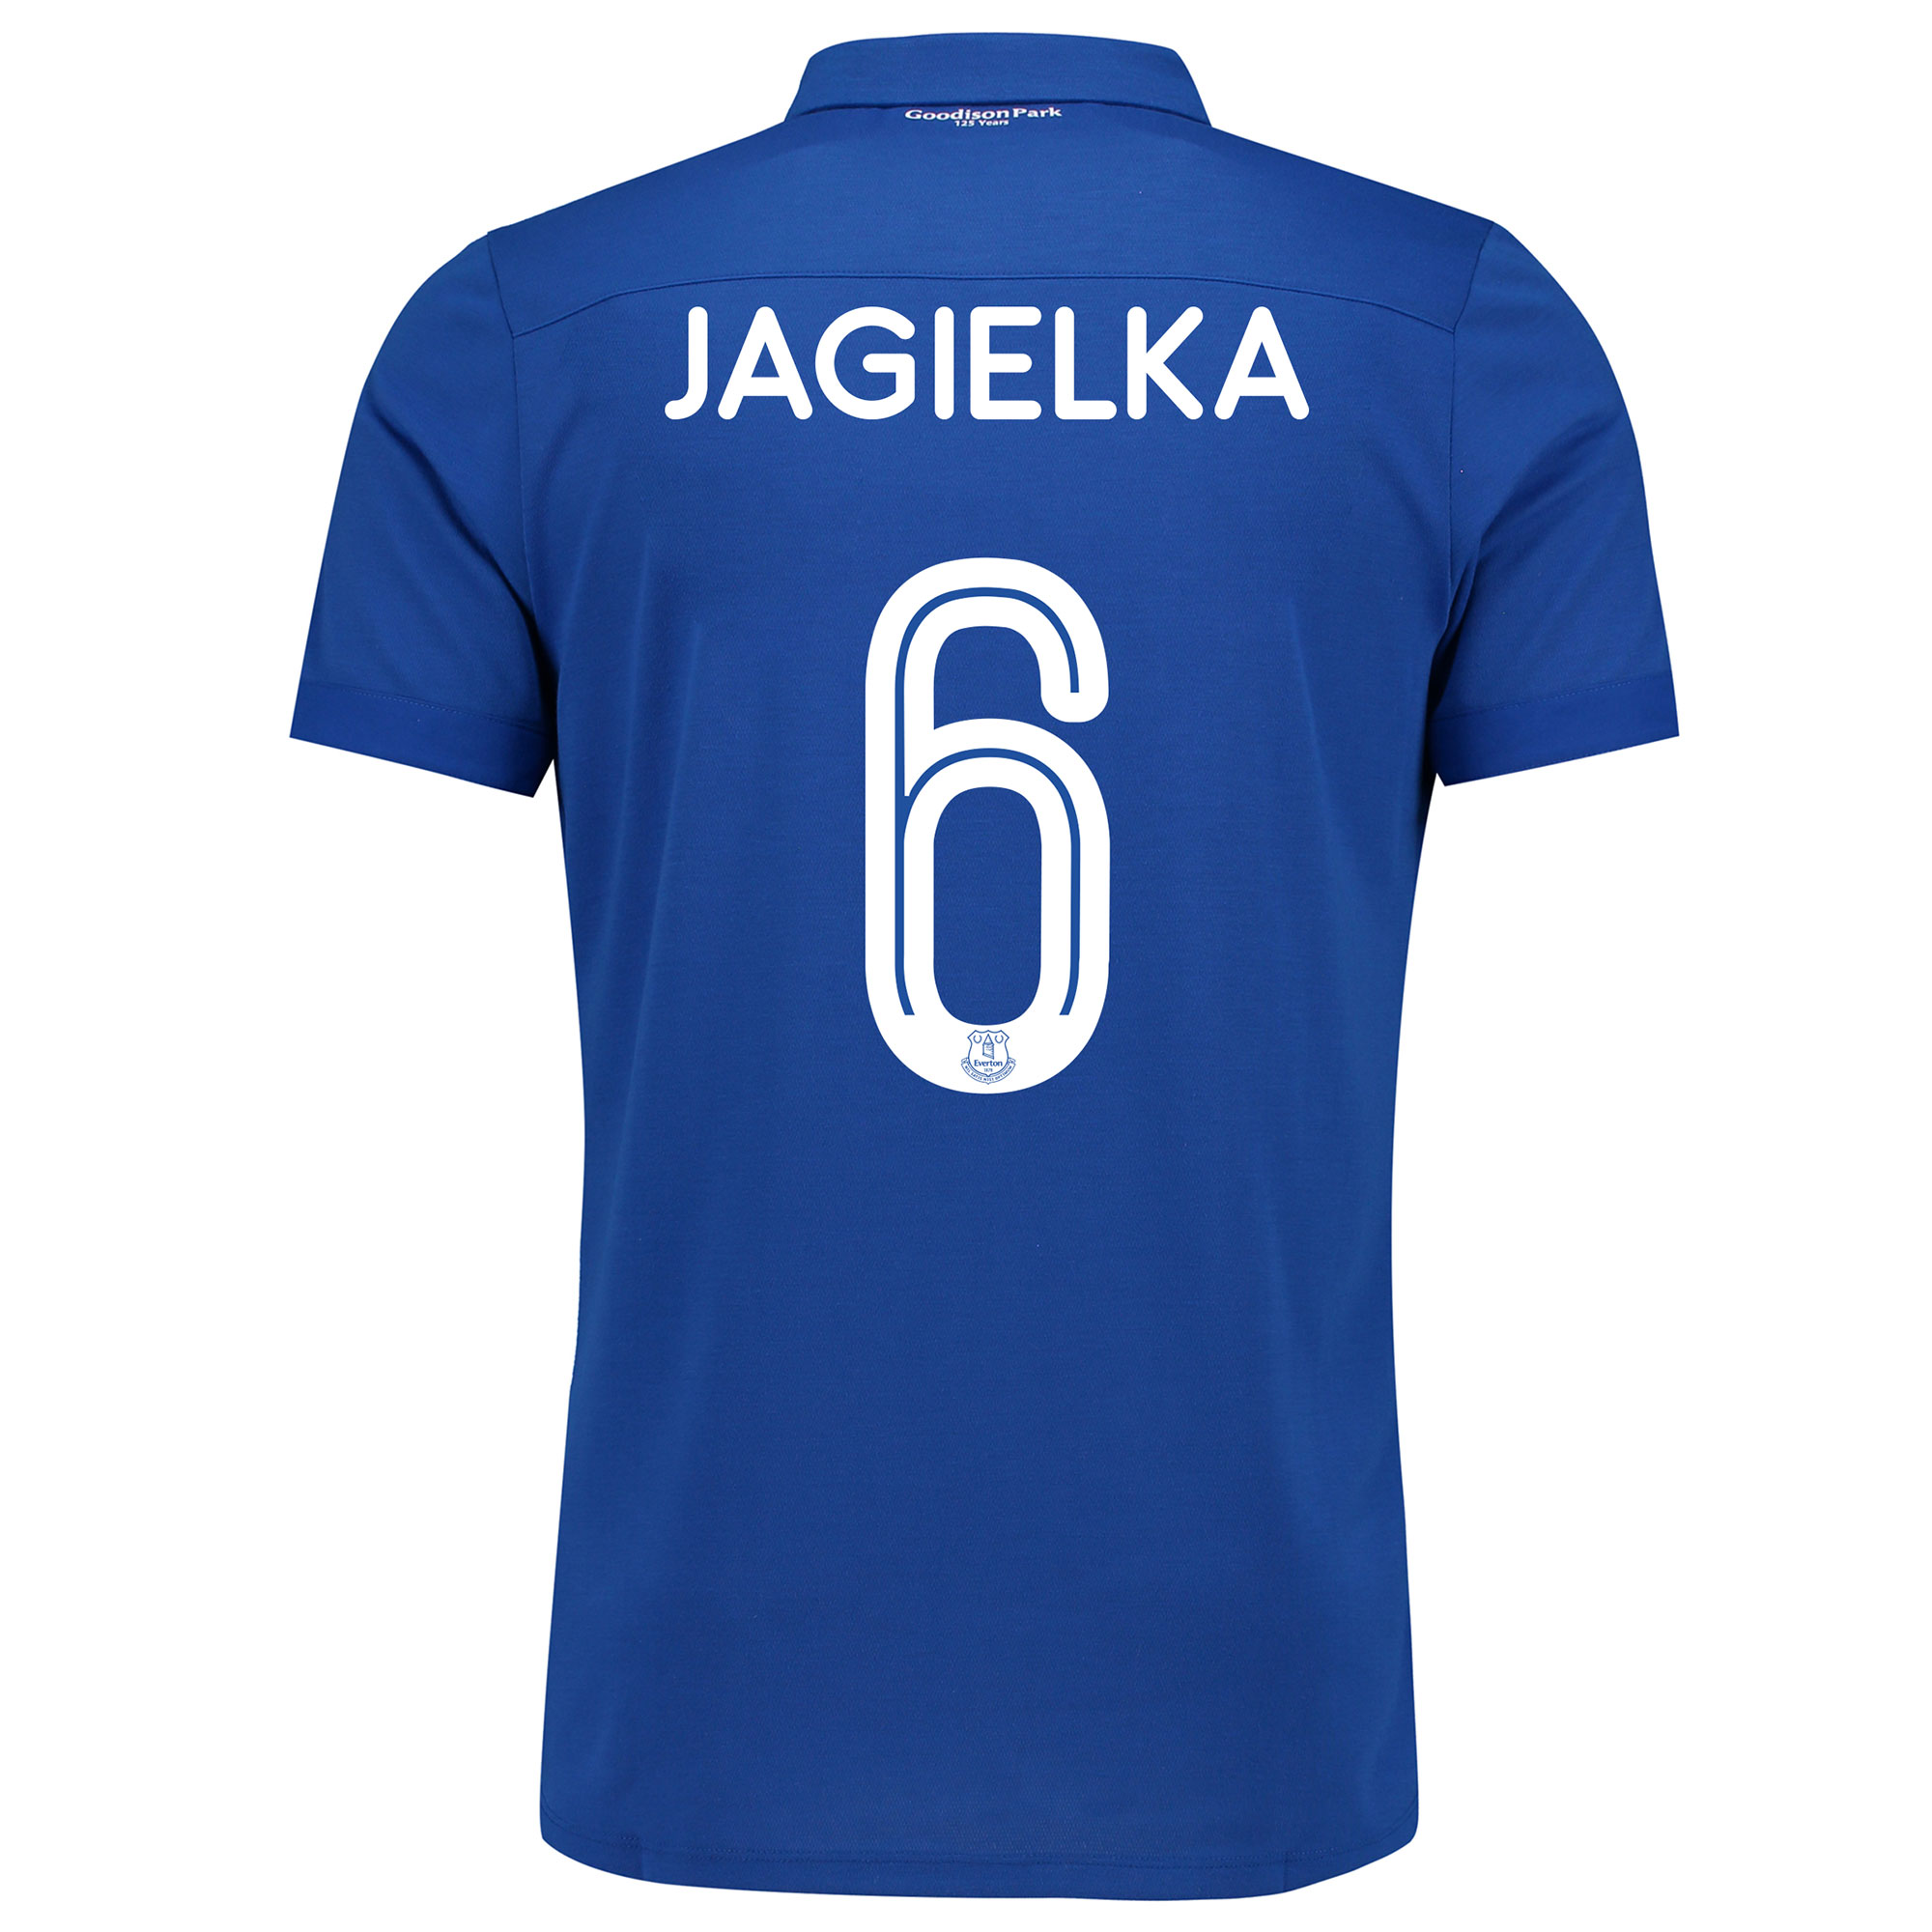 Image of Everton Commemorative Shirt with Jagielka 6 printing